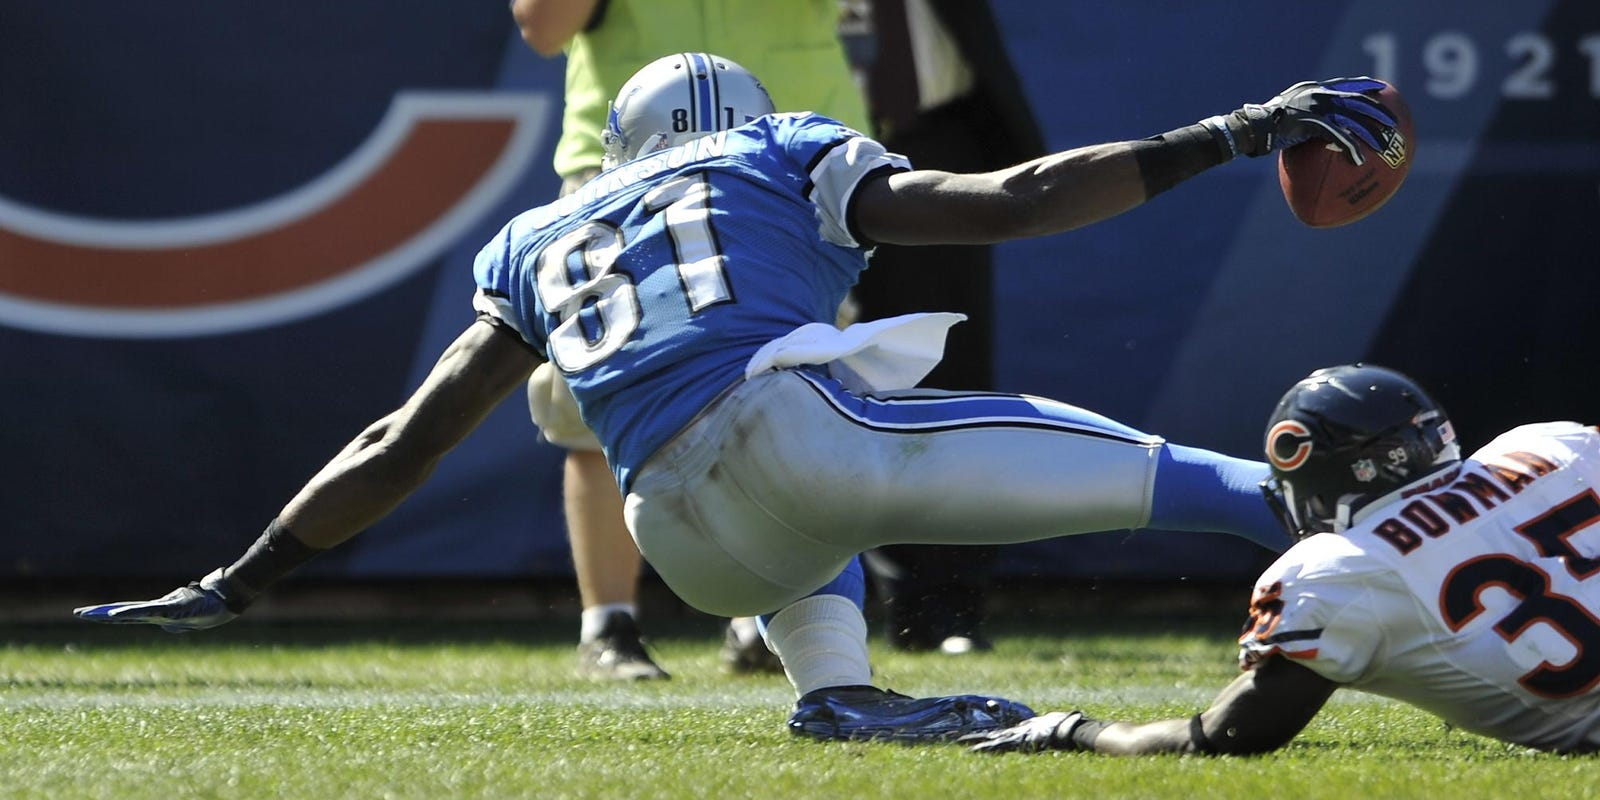 Nfl Agrees Megatron Made Catch Dez Bryant Too